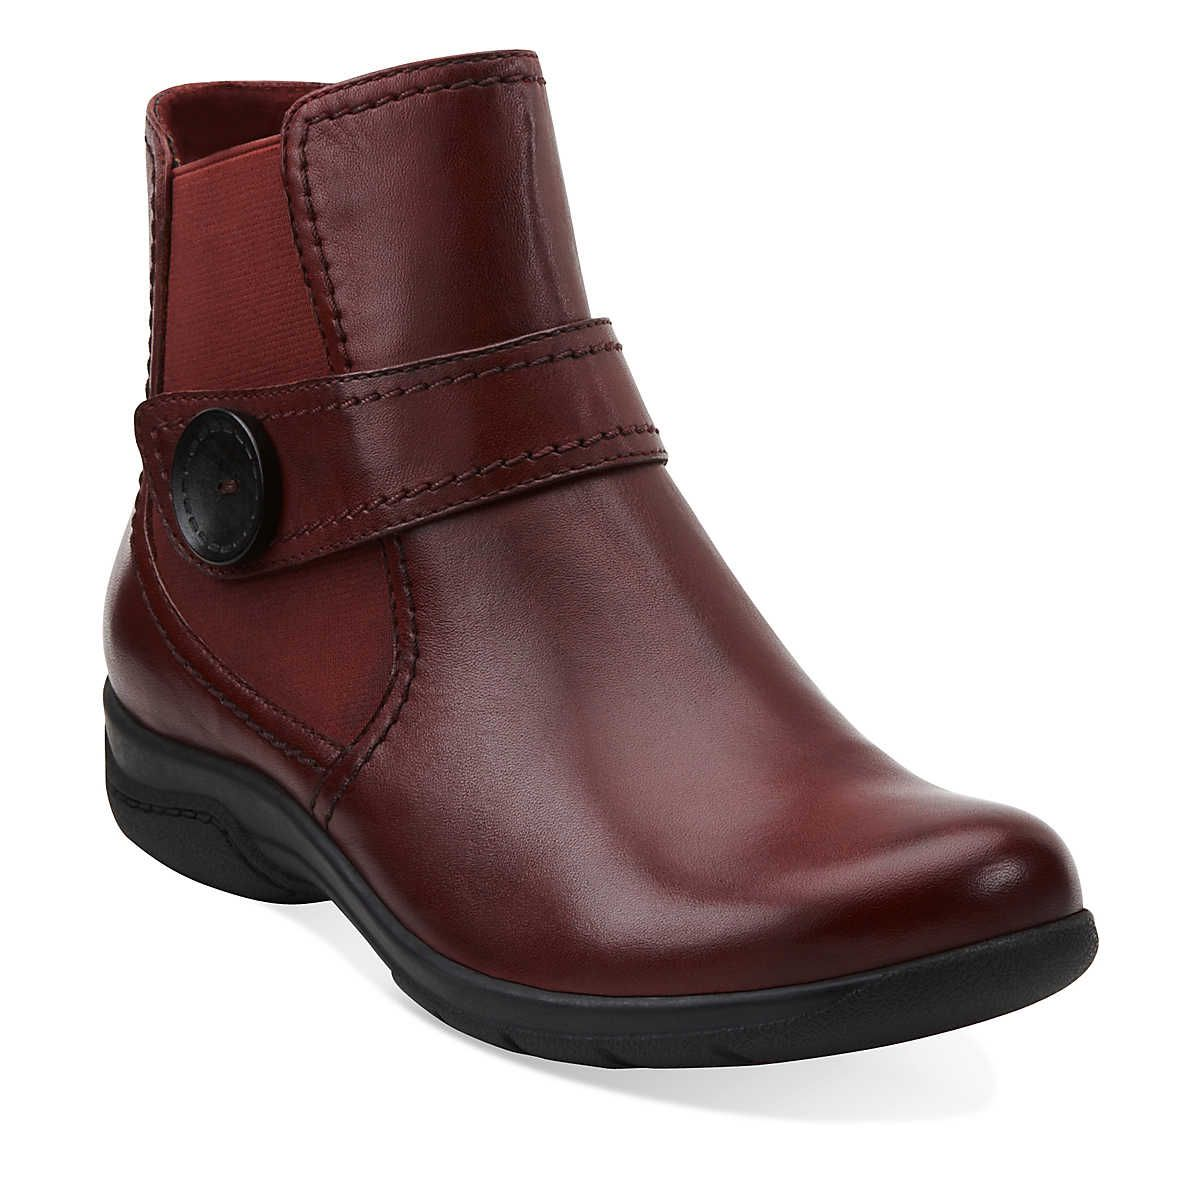 Chris Ava in Red Leather - Womens Boots from Clarks